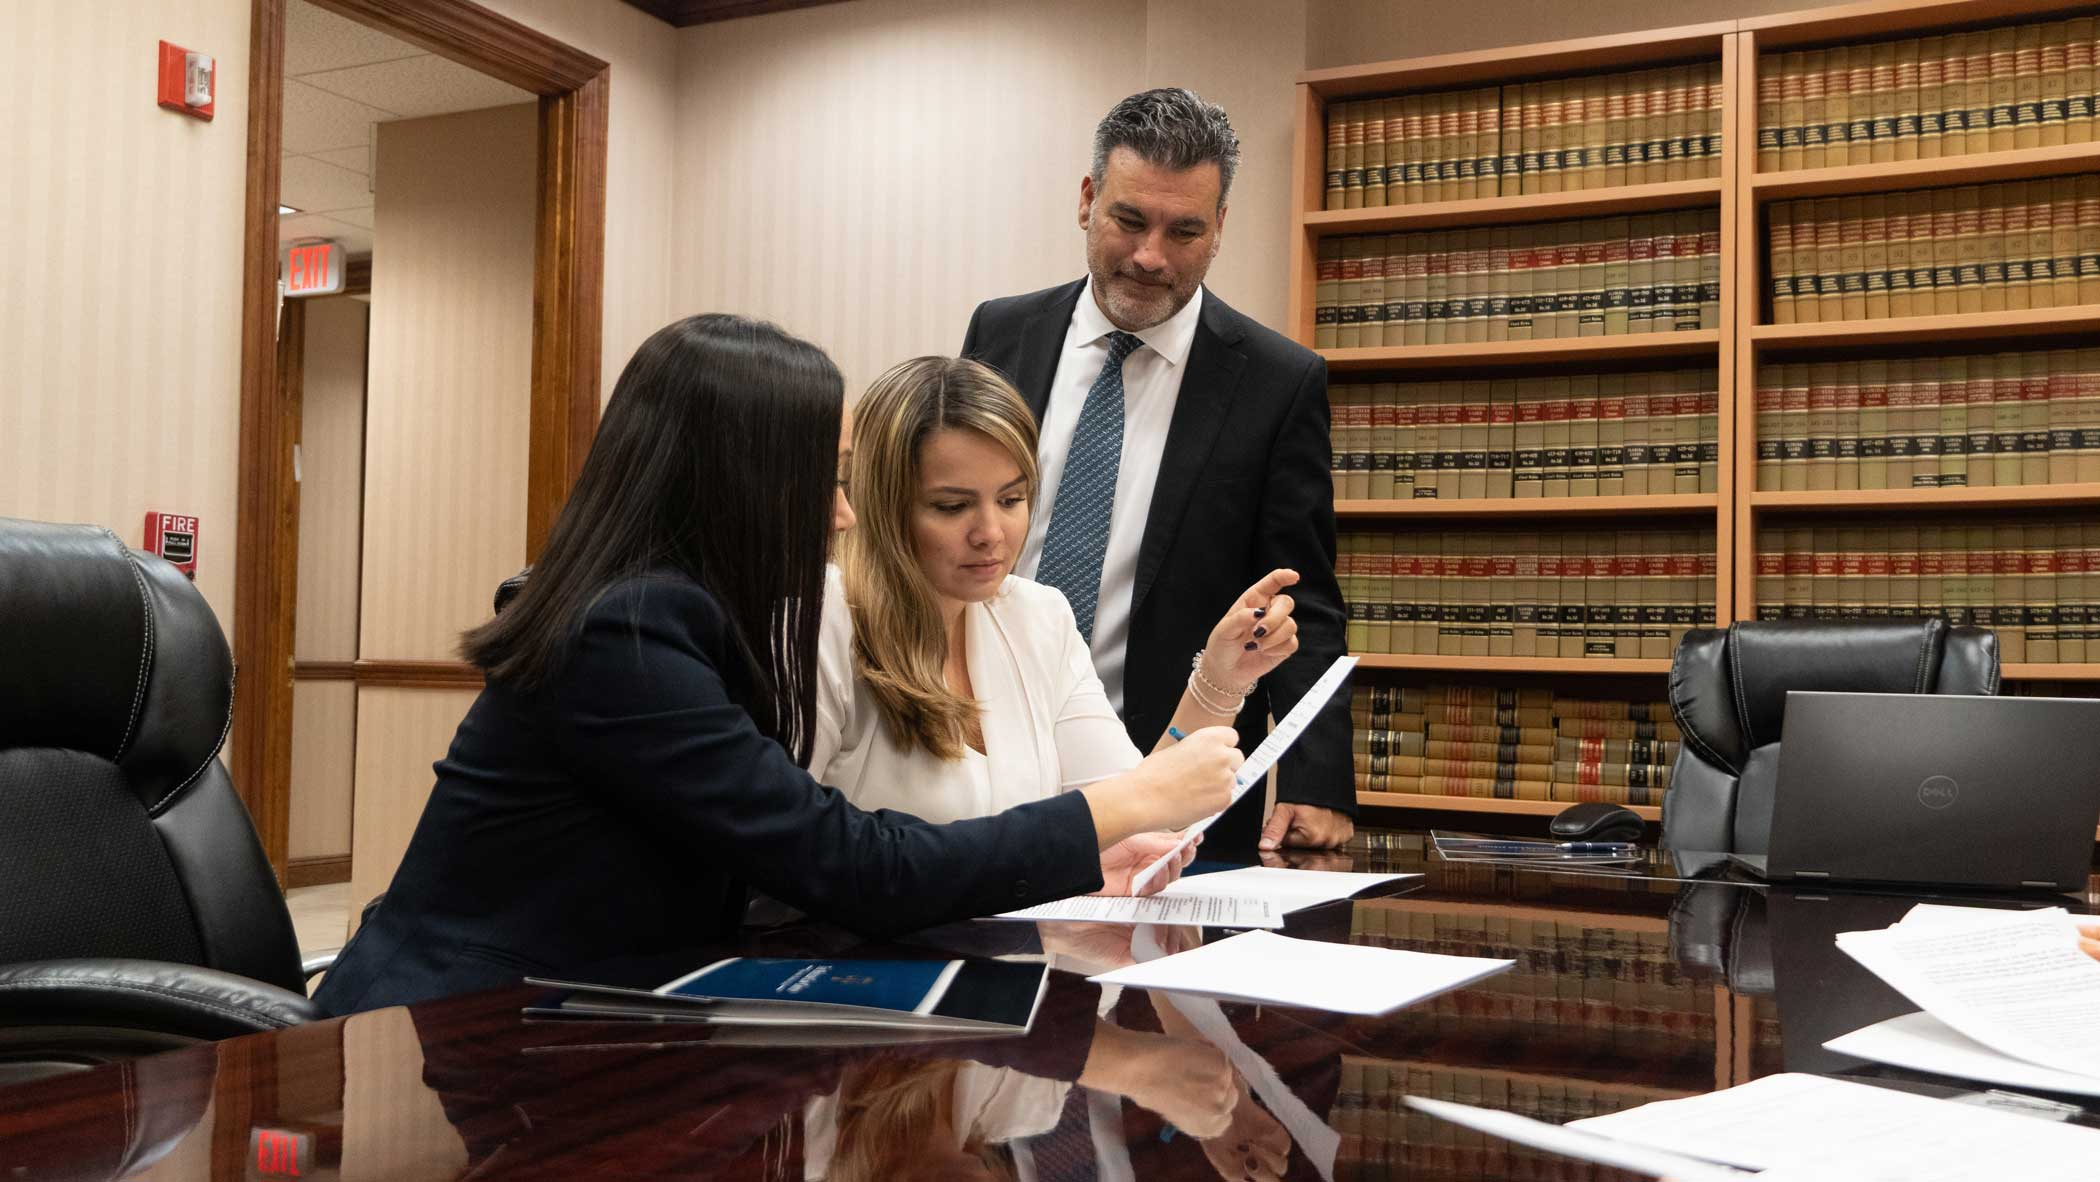 Two female lawyers are seating on a chair and the male lawyer is standing at their side, all are reviewing papers